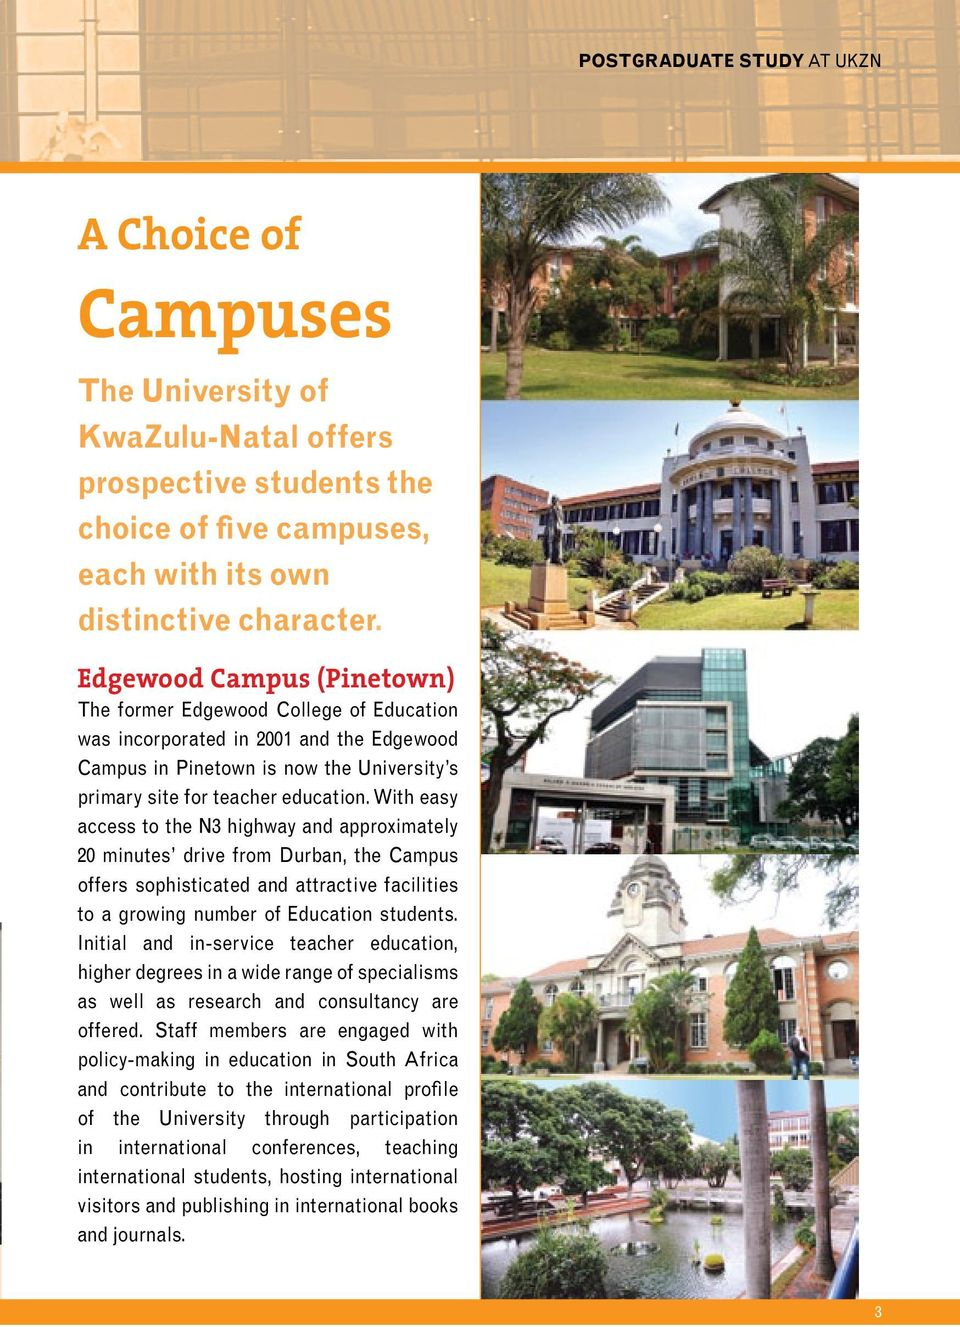 With easy access to the N3 highway and approximately 20 minutes drive from Durban, the Campus offers sophisticated and attractive facilities to a growing number of Education students.